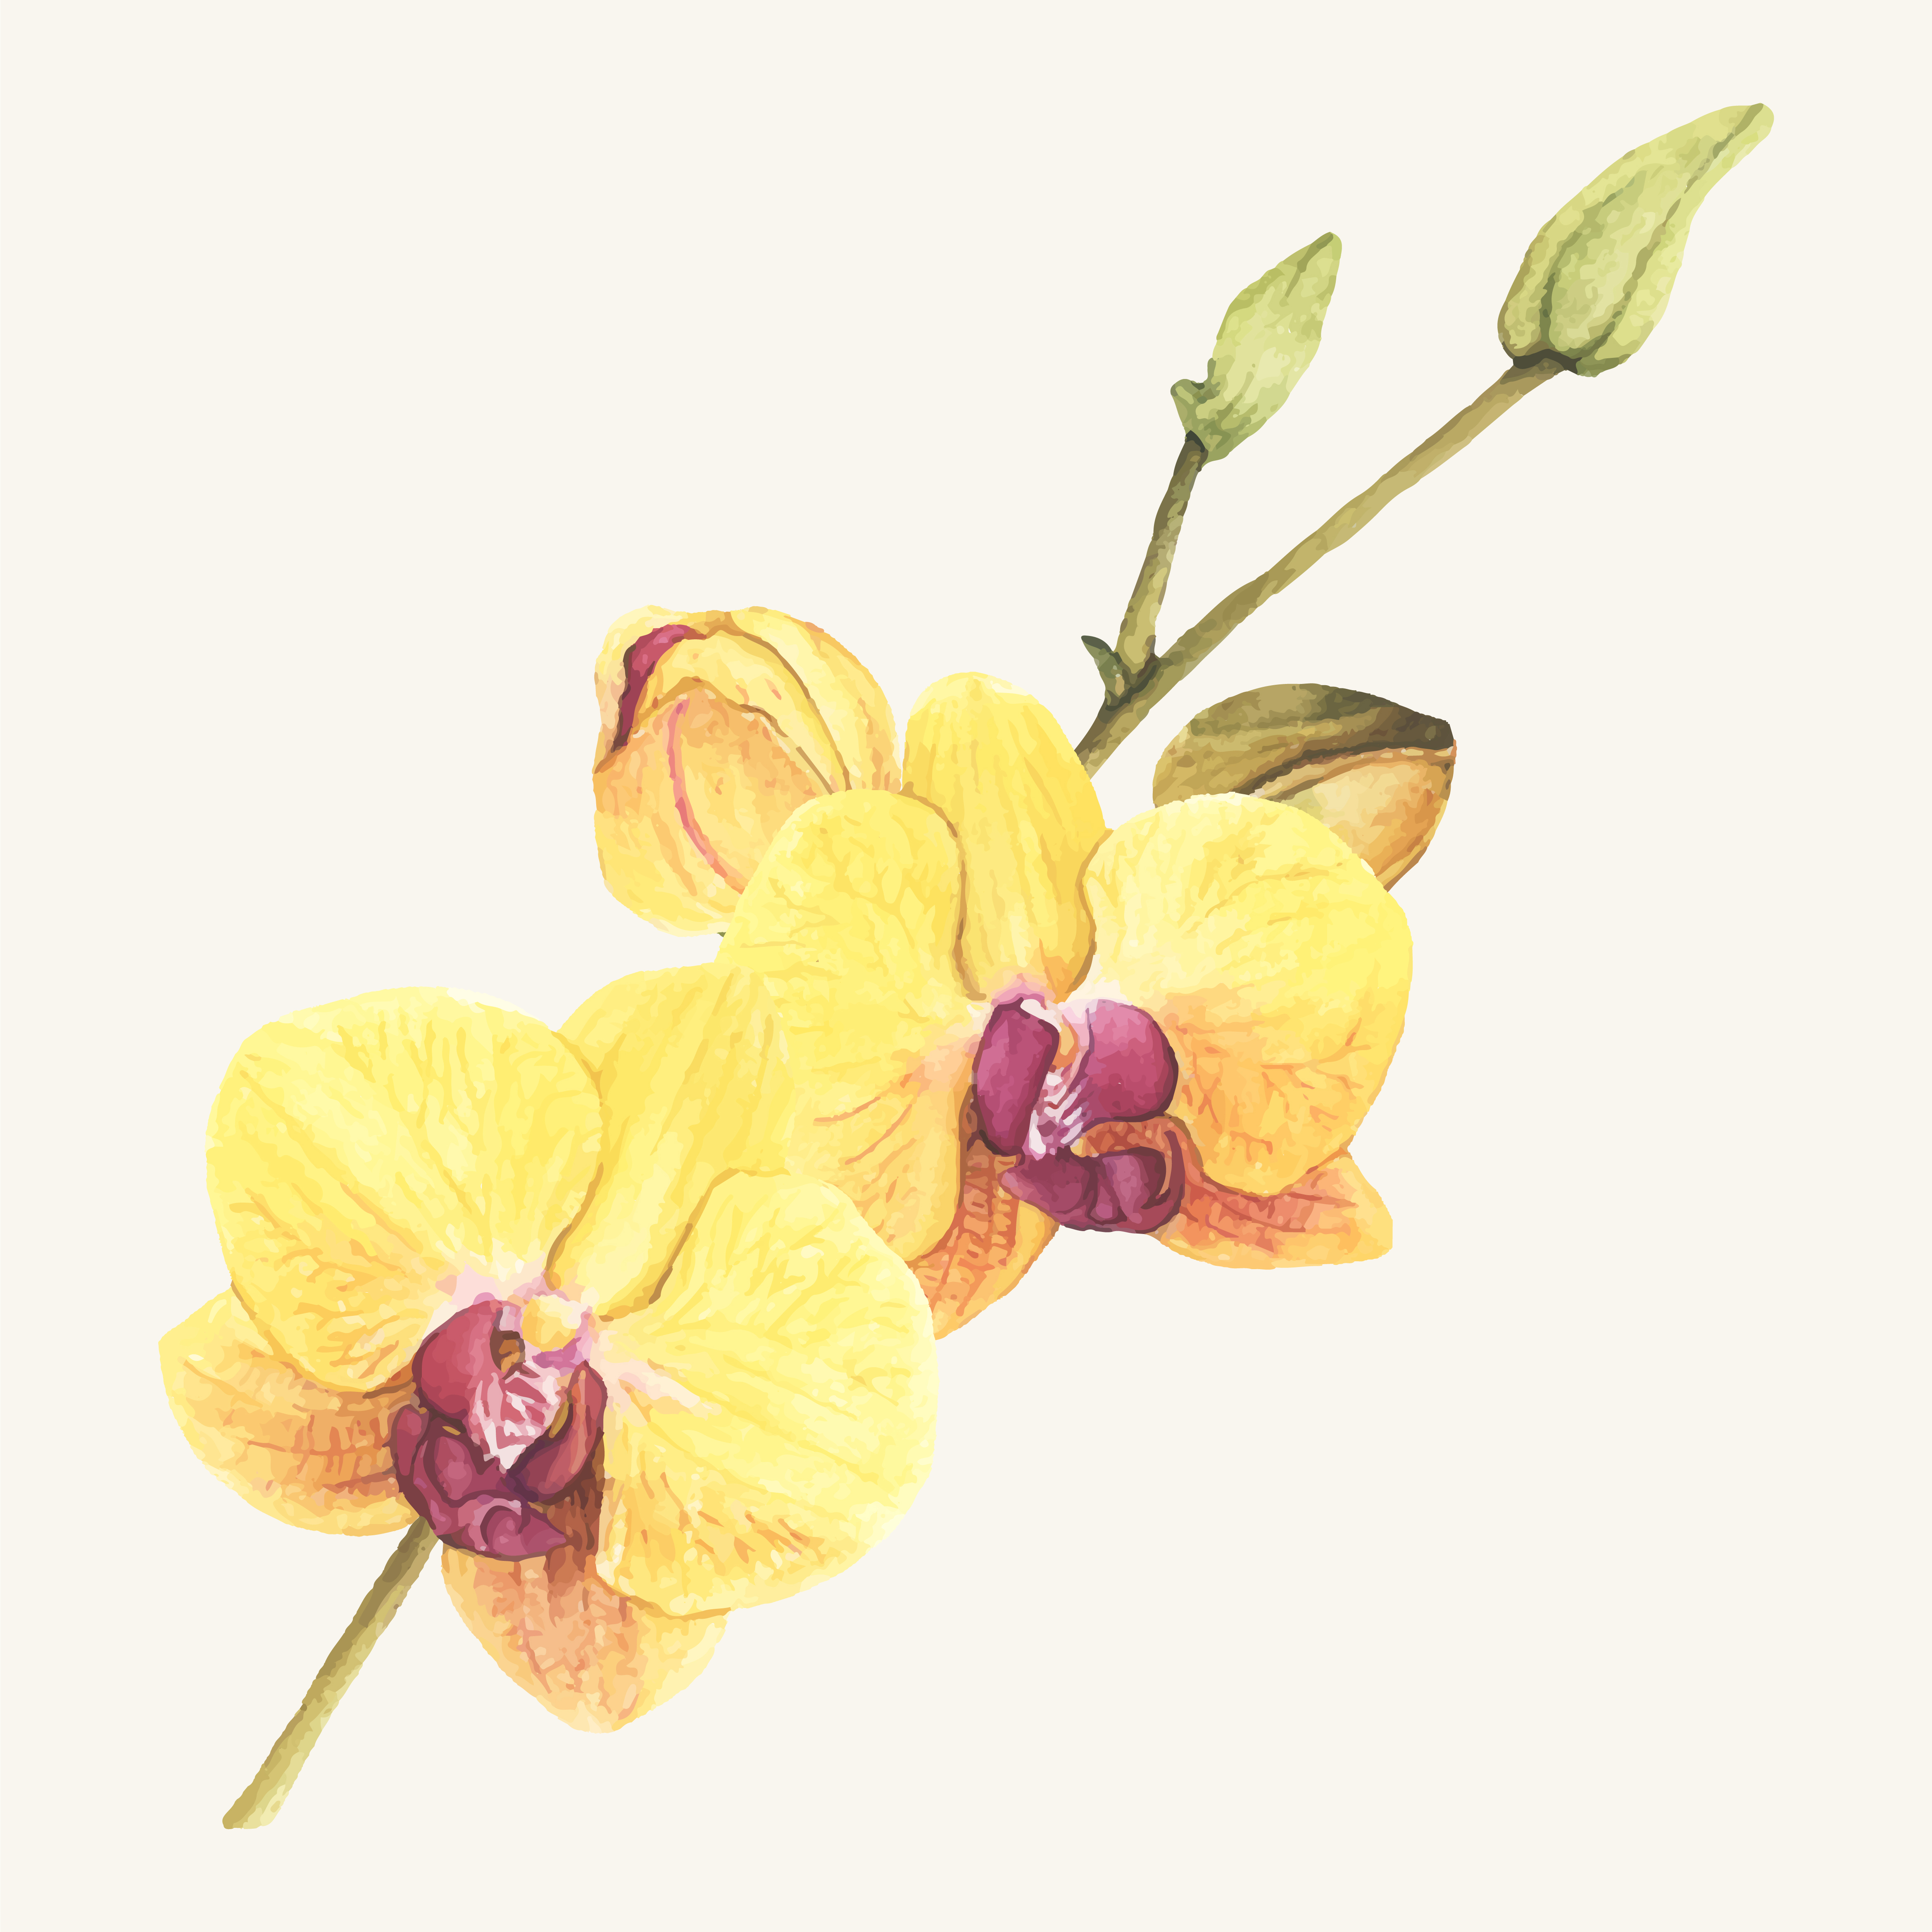 Watercolor Orchid Free Vector Art.